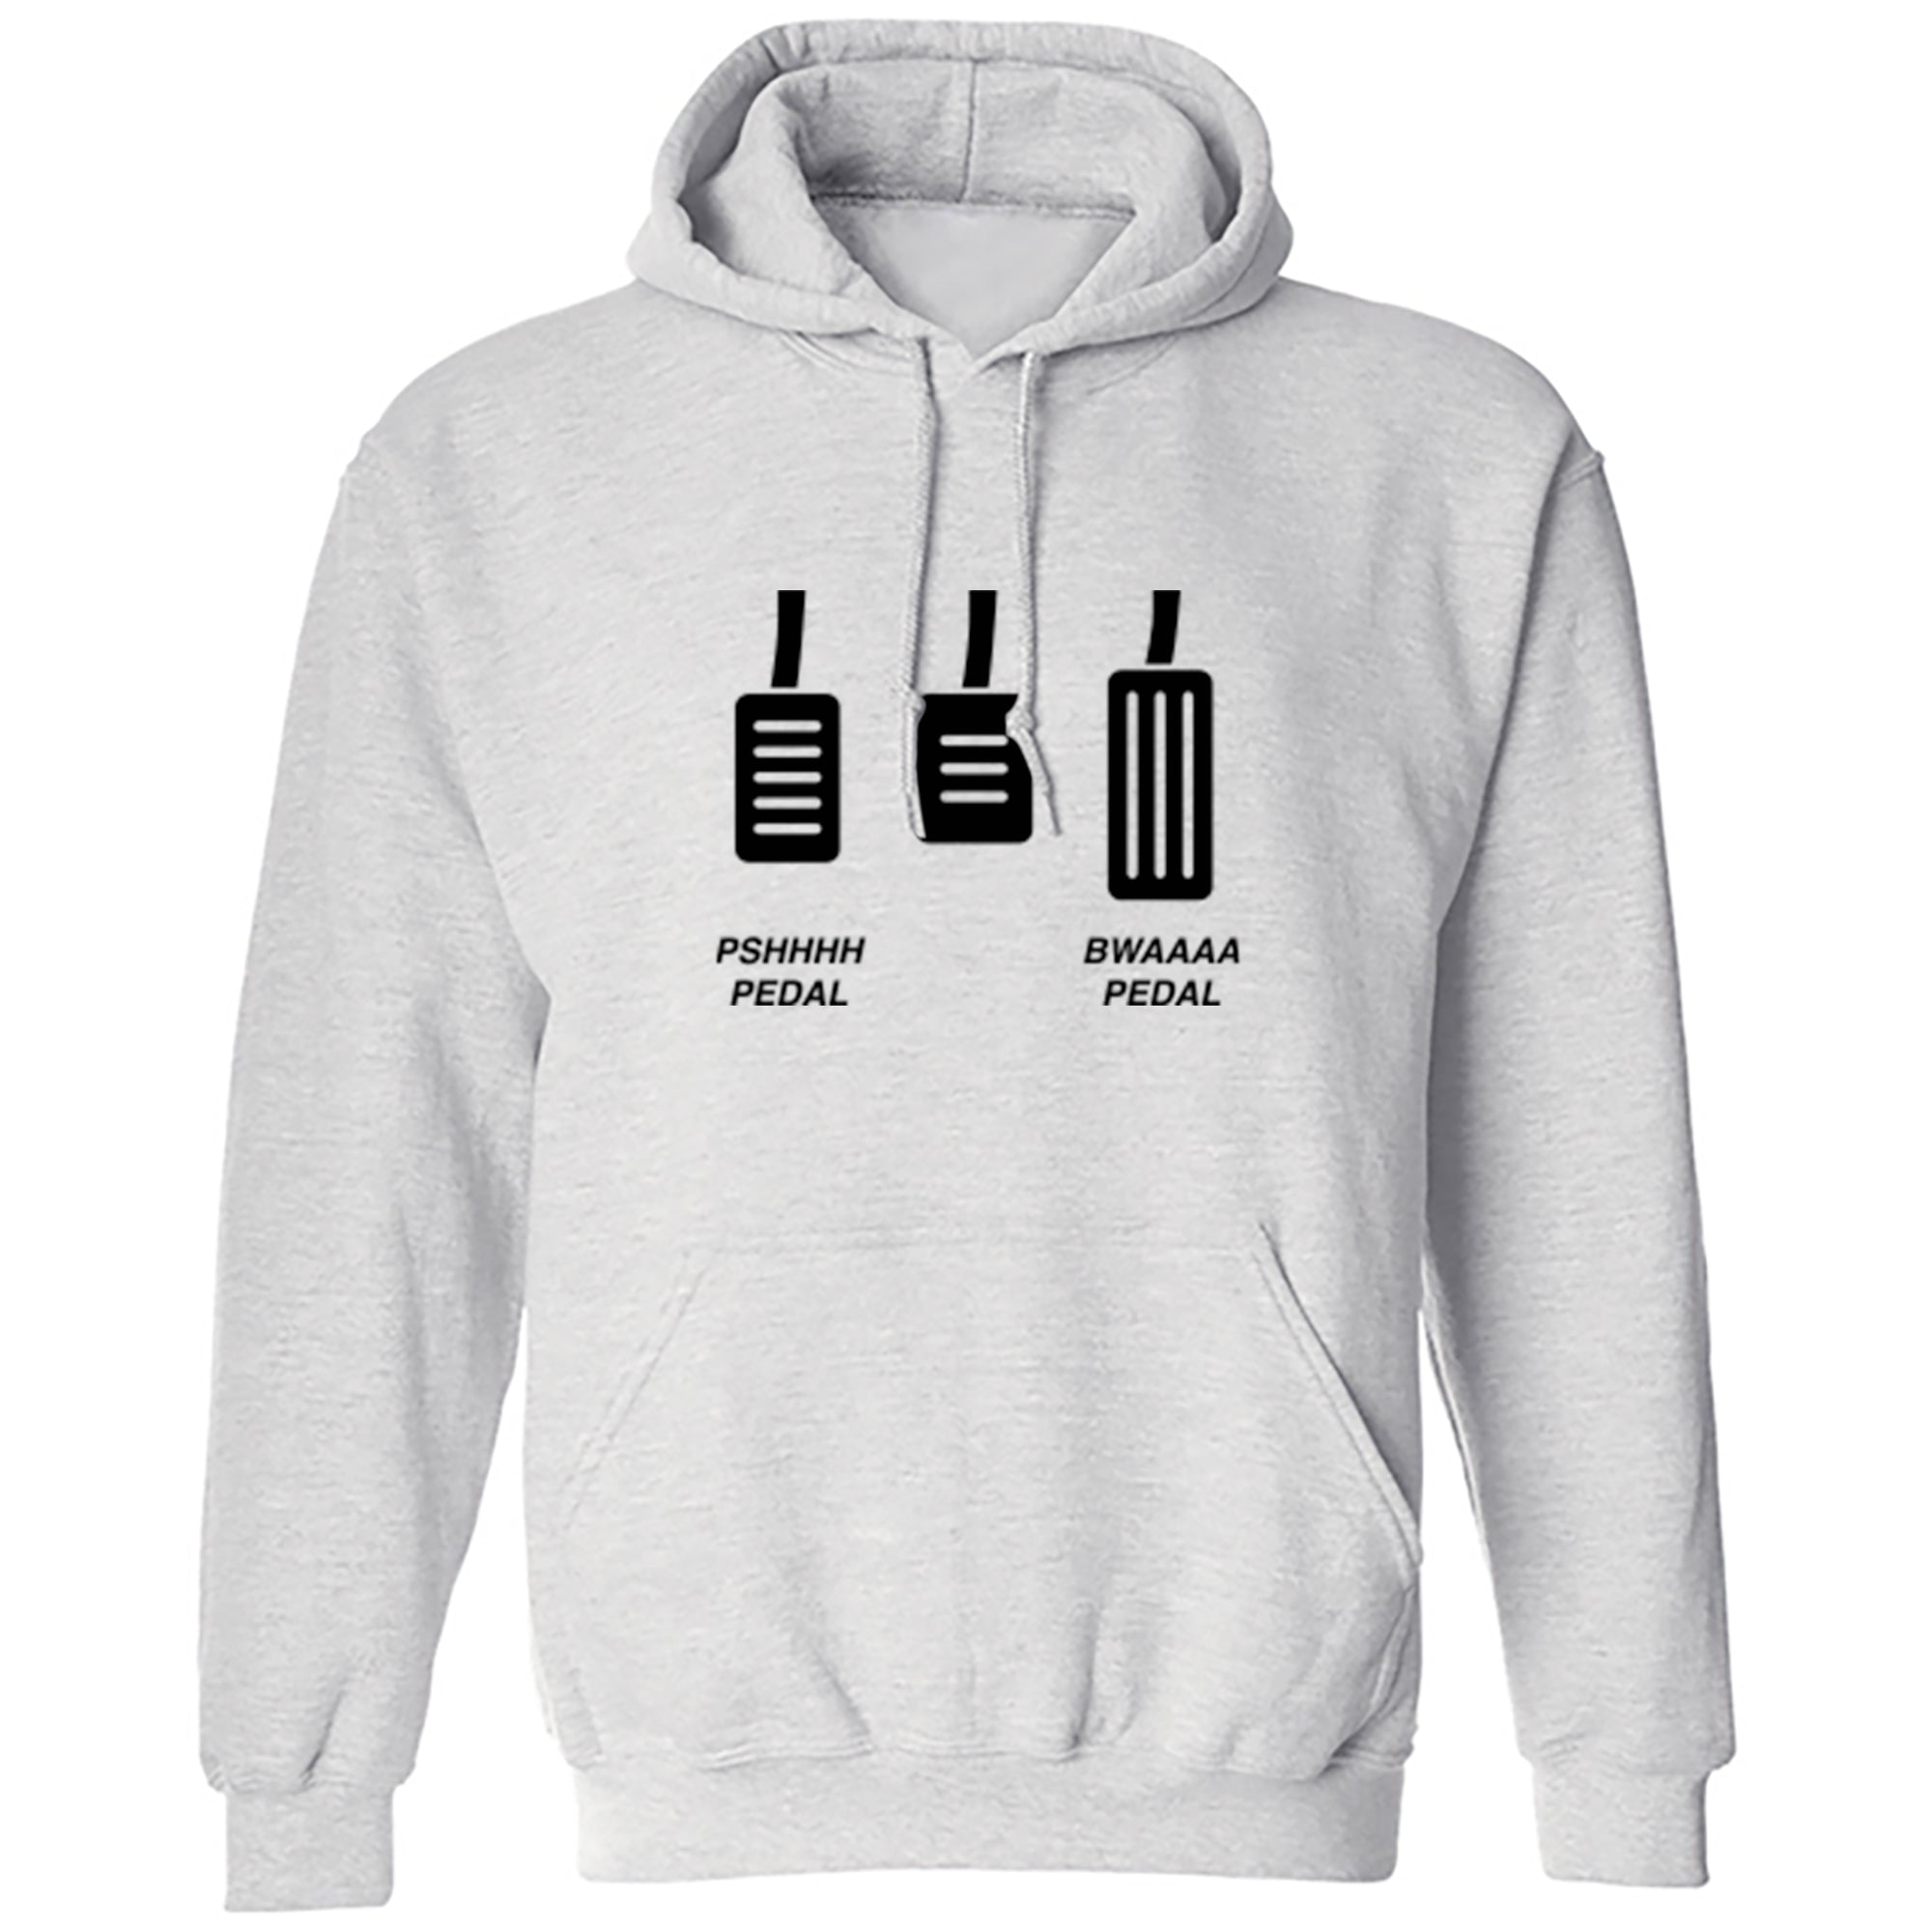 PSHHHH Pedal BWAAAA Pedal Unisex Hoodie A0078 - Illustrated Identity Ltd.